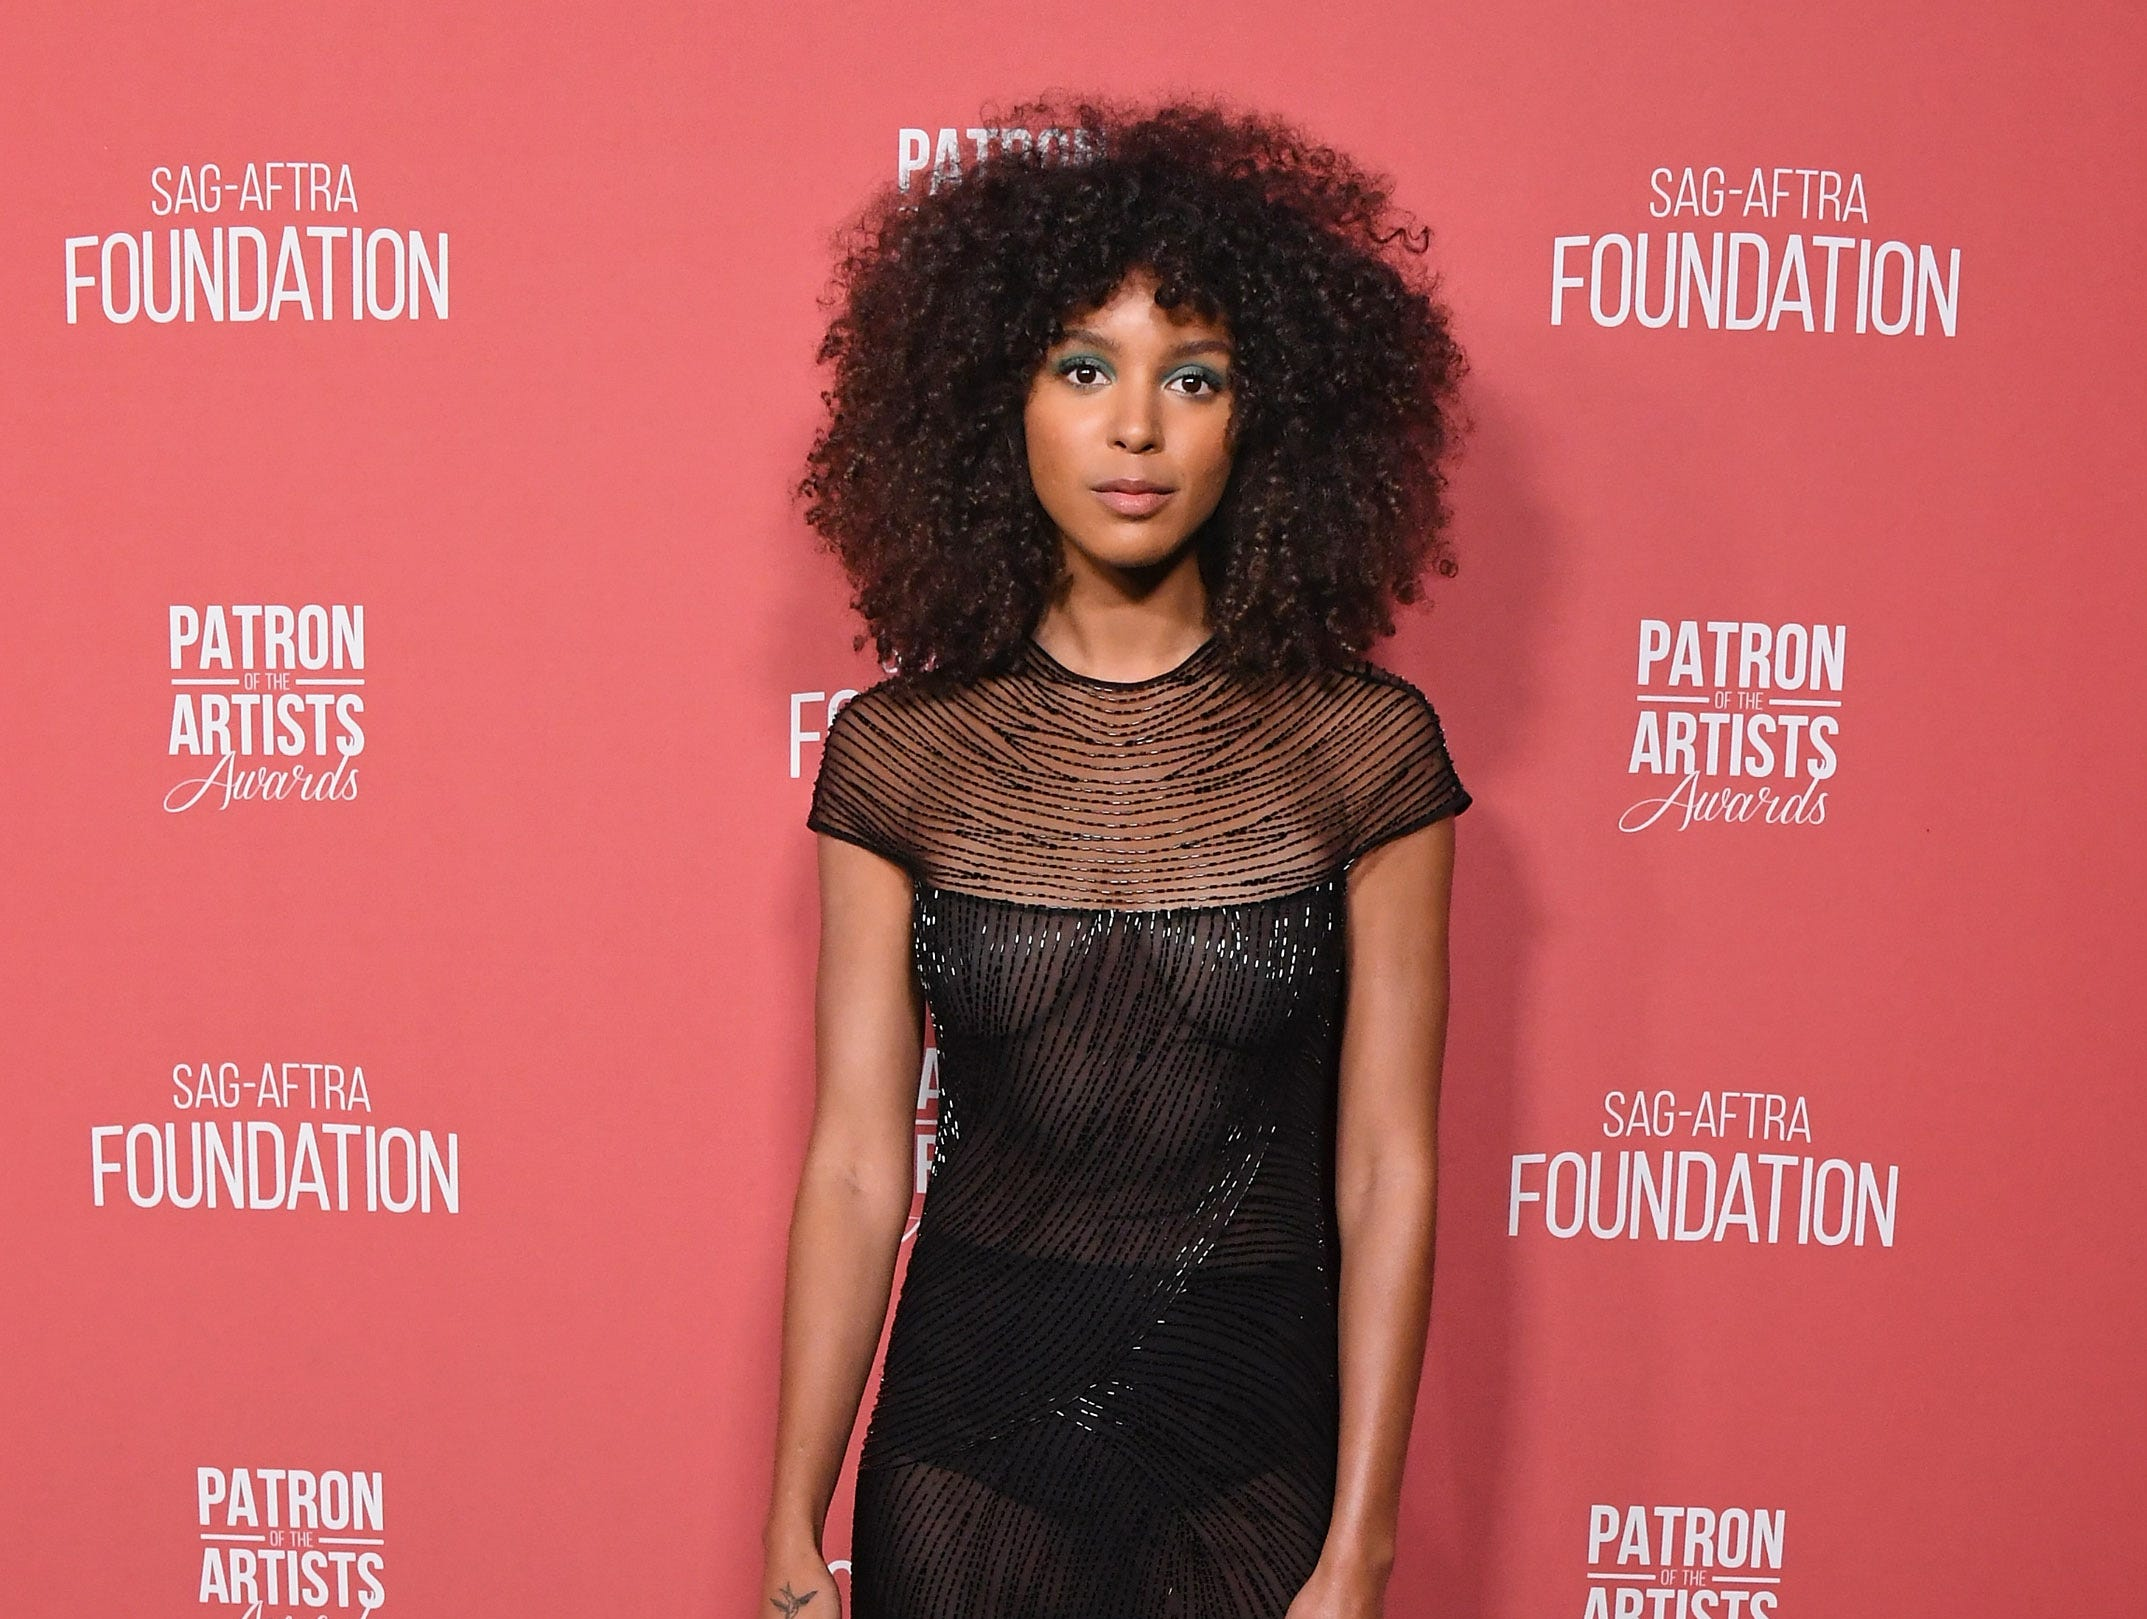 BEVERLY HILLS, CA - NOVEMBER 08:  Arlissa attends SAG-AFTRA Foundation's 3rd Annual Patron Of The Artists Awards at Wallis Annenberg Center for the Performing Arts on November 8, 2018 in Beverly Hills, California.  (Photo by Jon Kopaloff/FilmMagic) ORG XMIT: 775233471 ORIG FILE ID: 1059469328